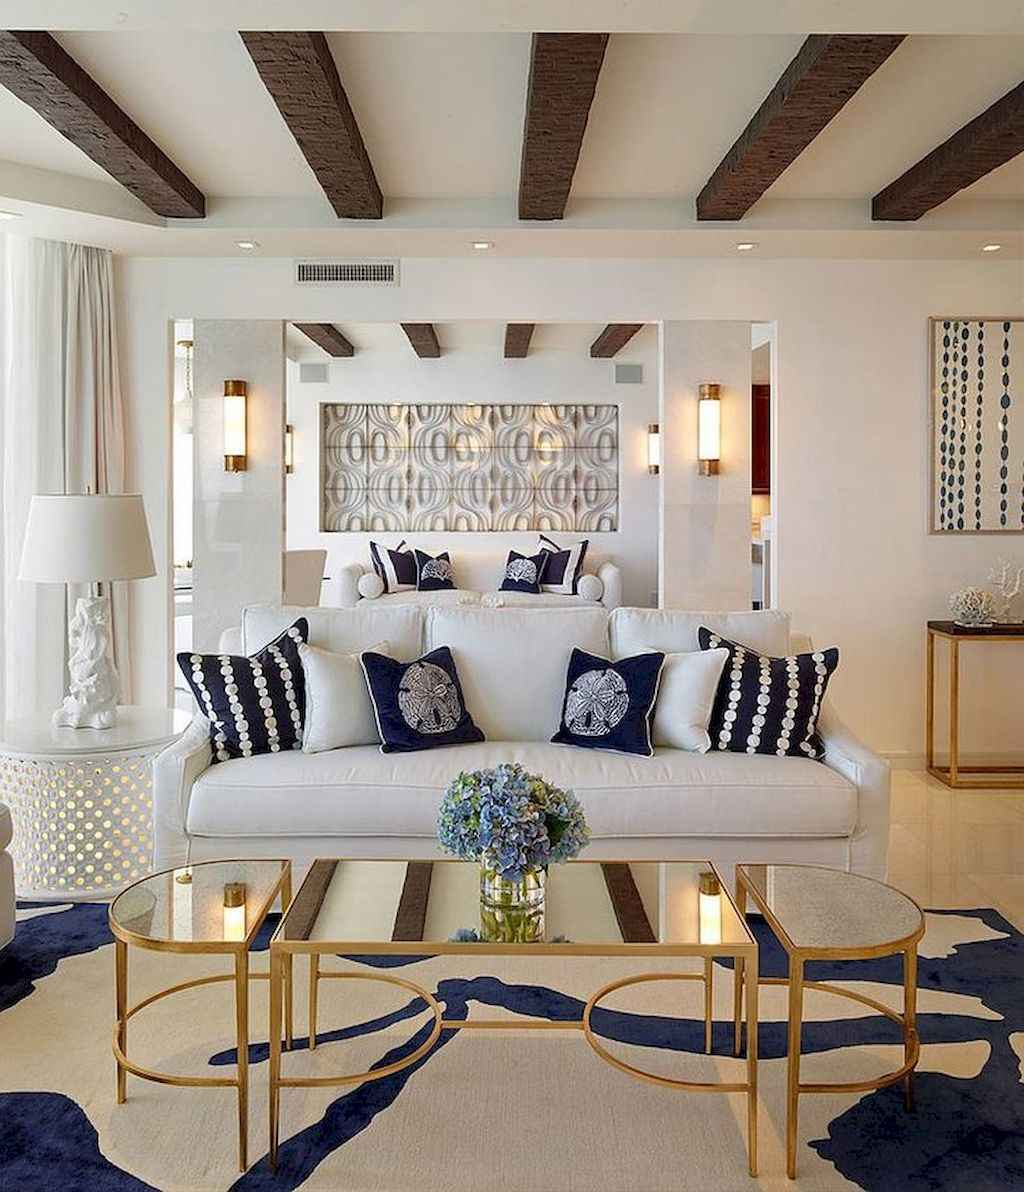 70 Cool and Clean Coastal Living Room Decorating Ideas (42 ...